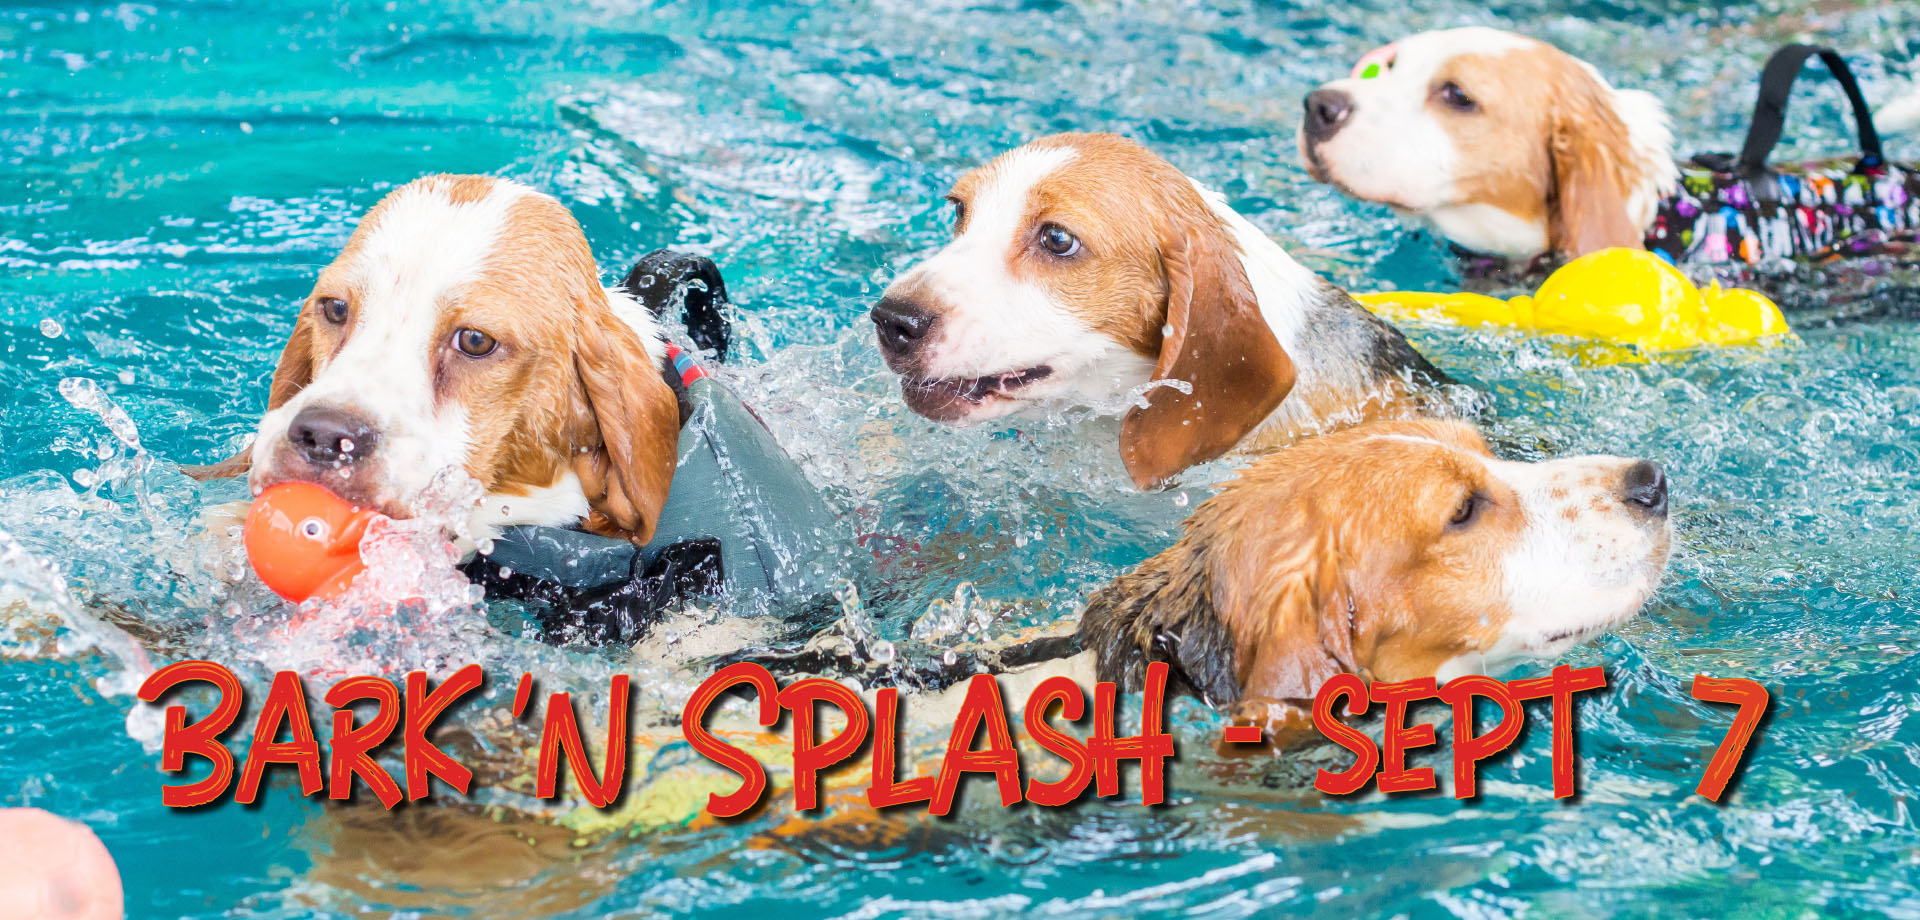 bark  n splash  banner